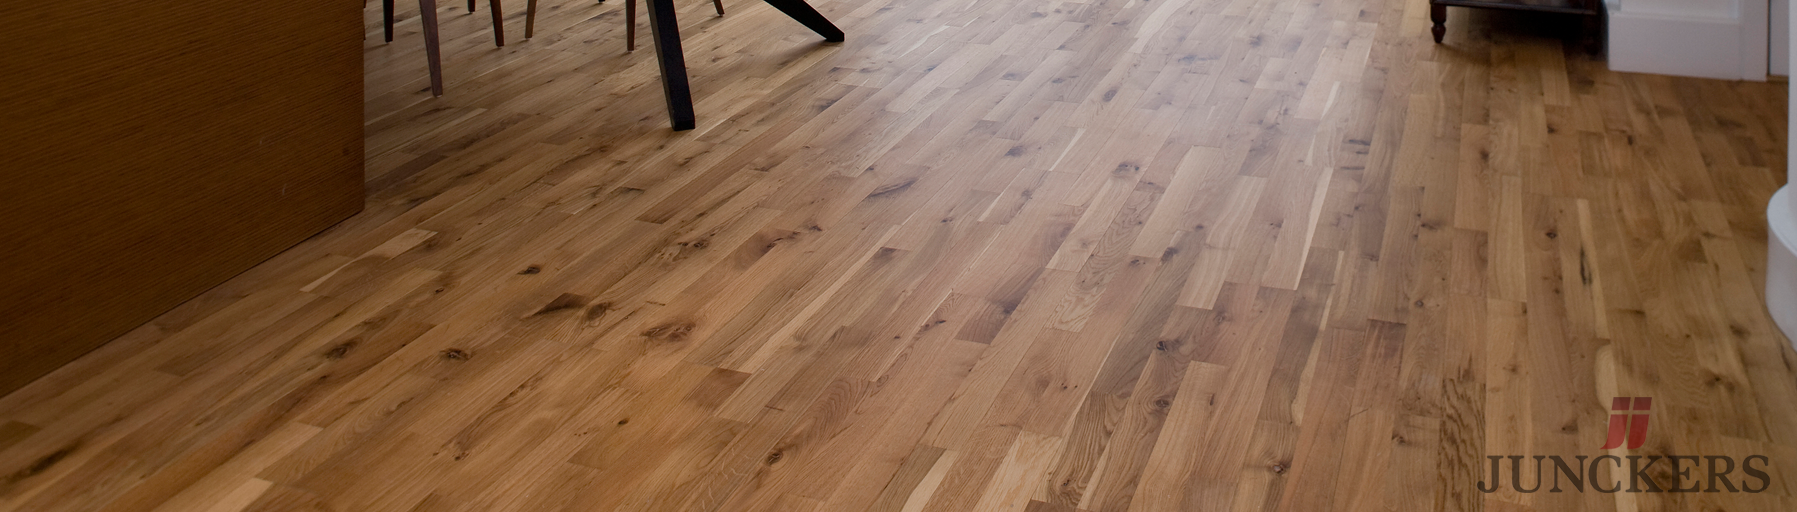 Real Wood Flooring in Stoke, Stoke-on-Trent